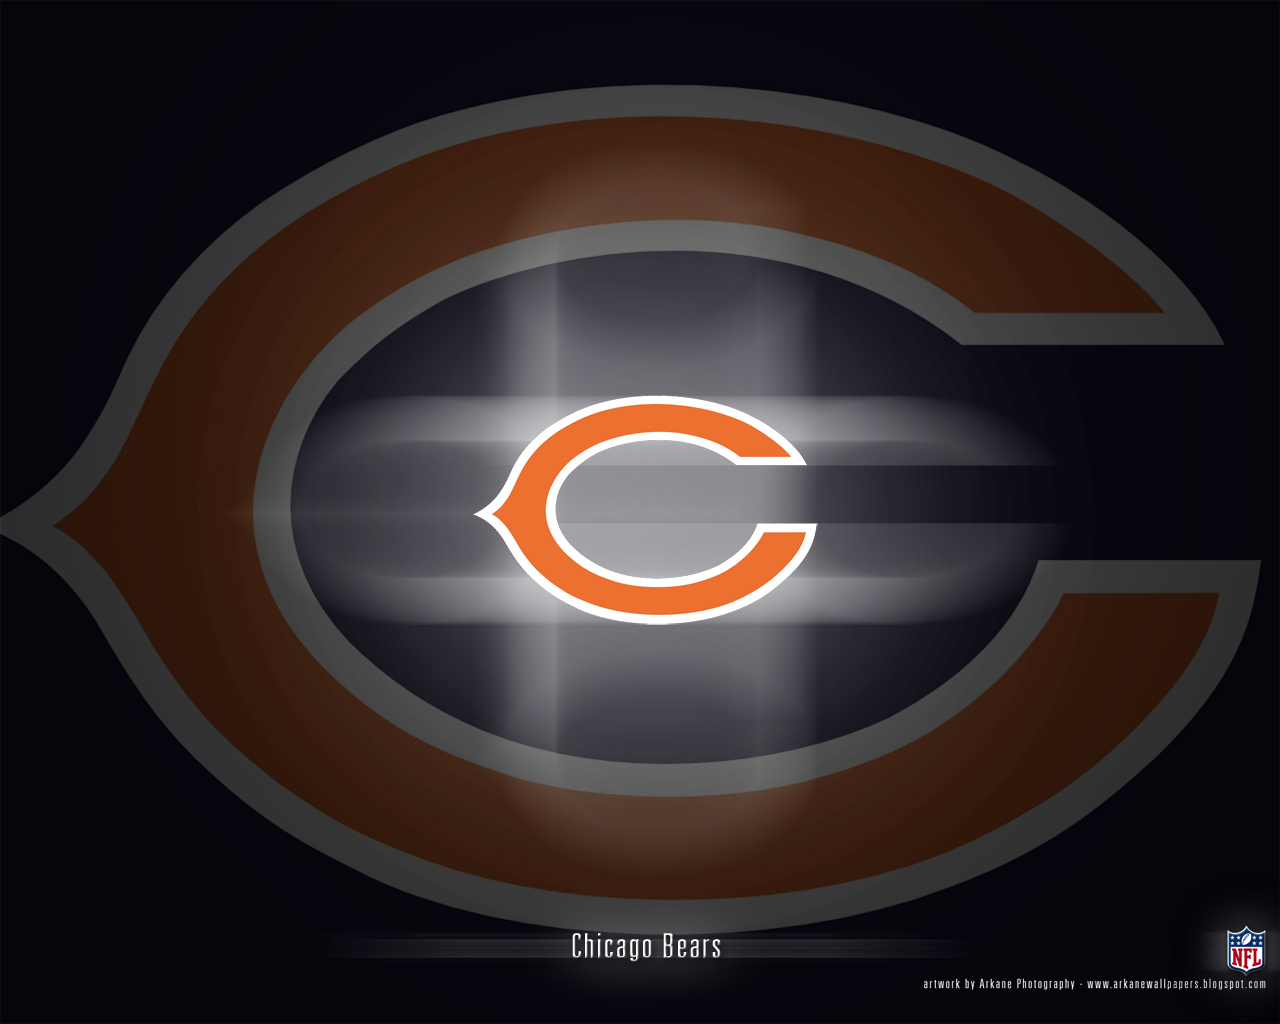 Chicago Bears wallpaper HD images Chicago Bears wallpapers 1280x1024